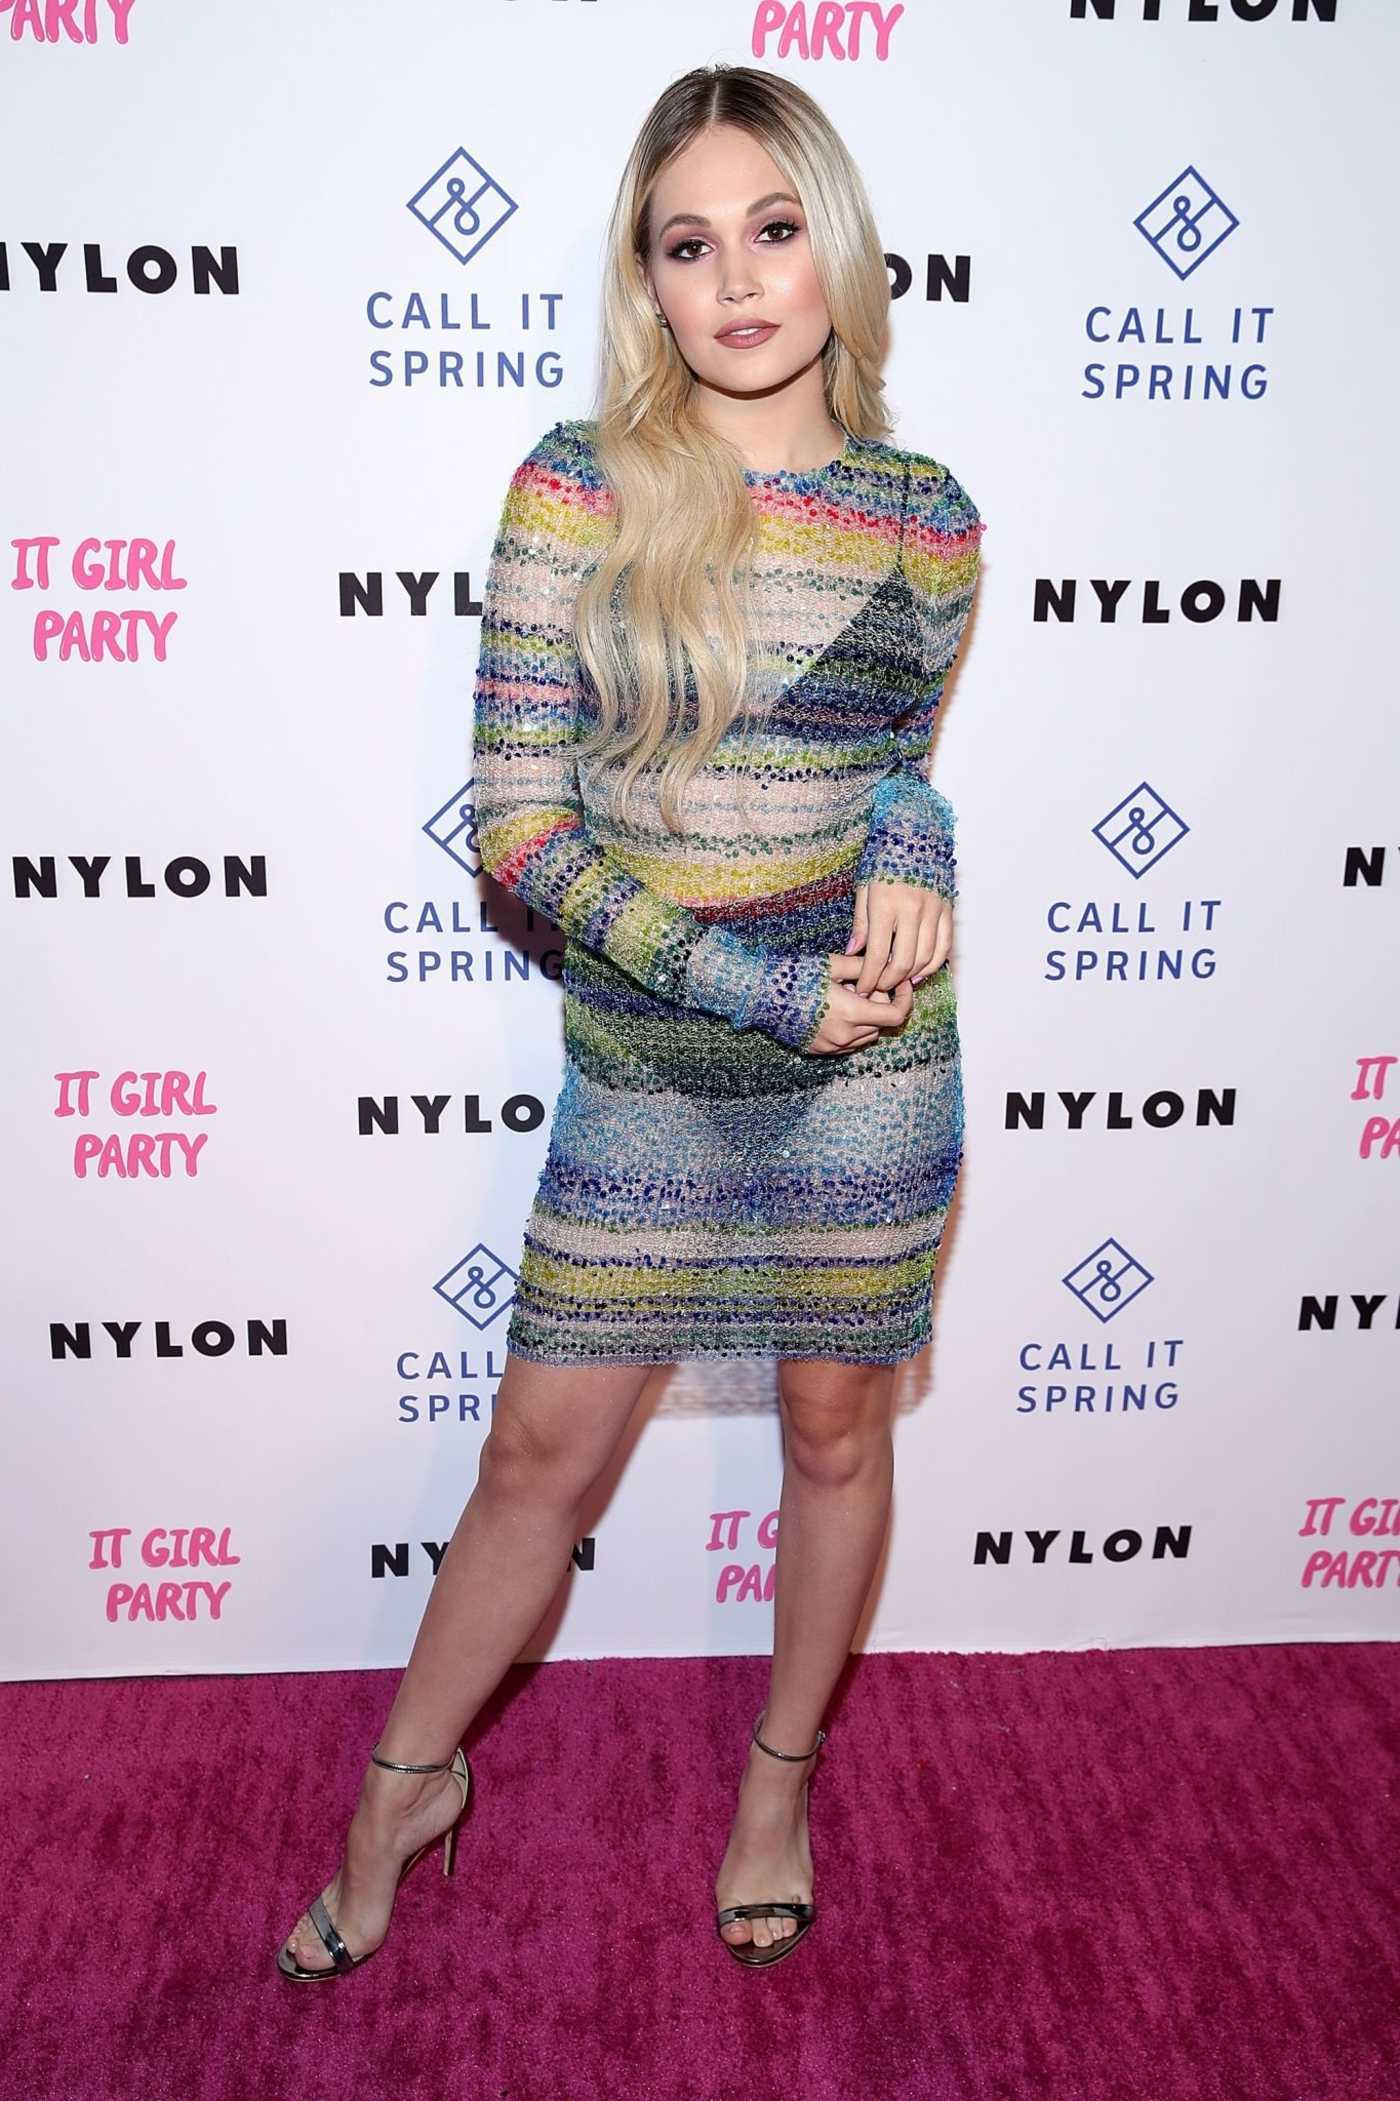 Kelli Berglund Attends NYLON's Annual It Girl Party at The Ace Hotel in LA 10/11/2018